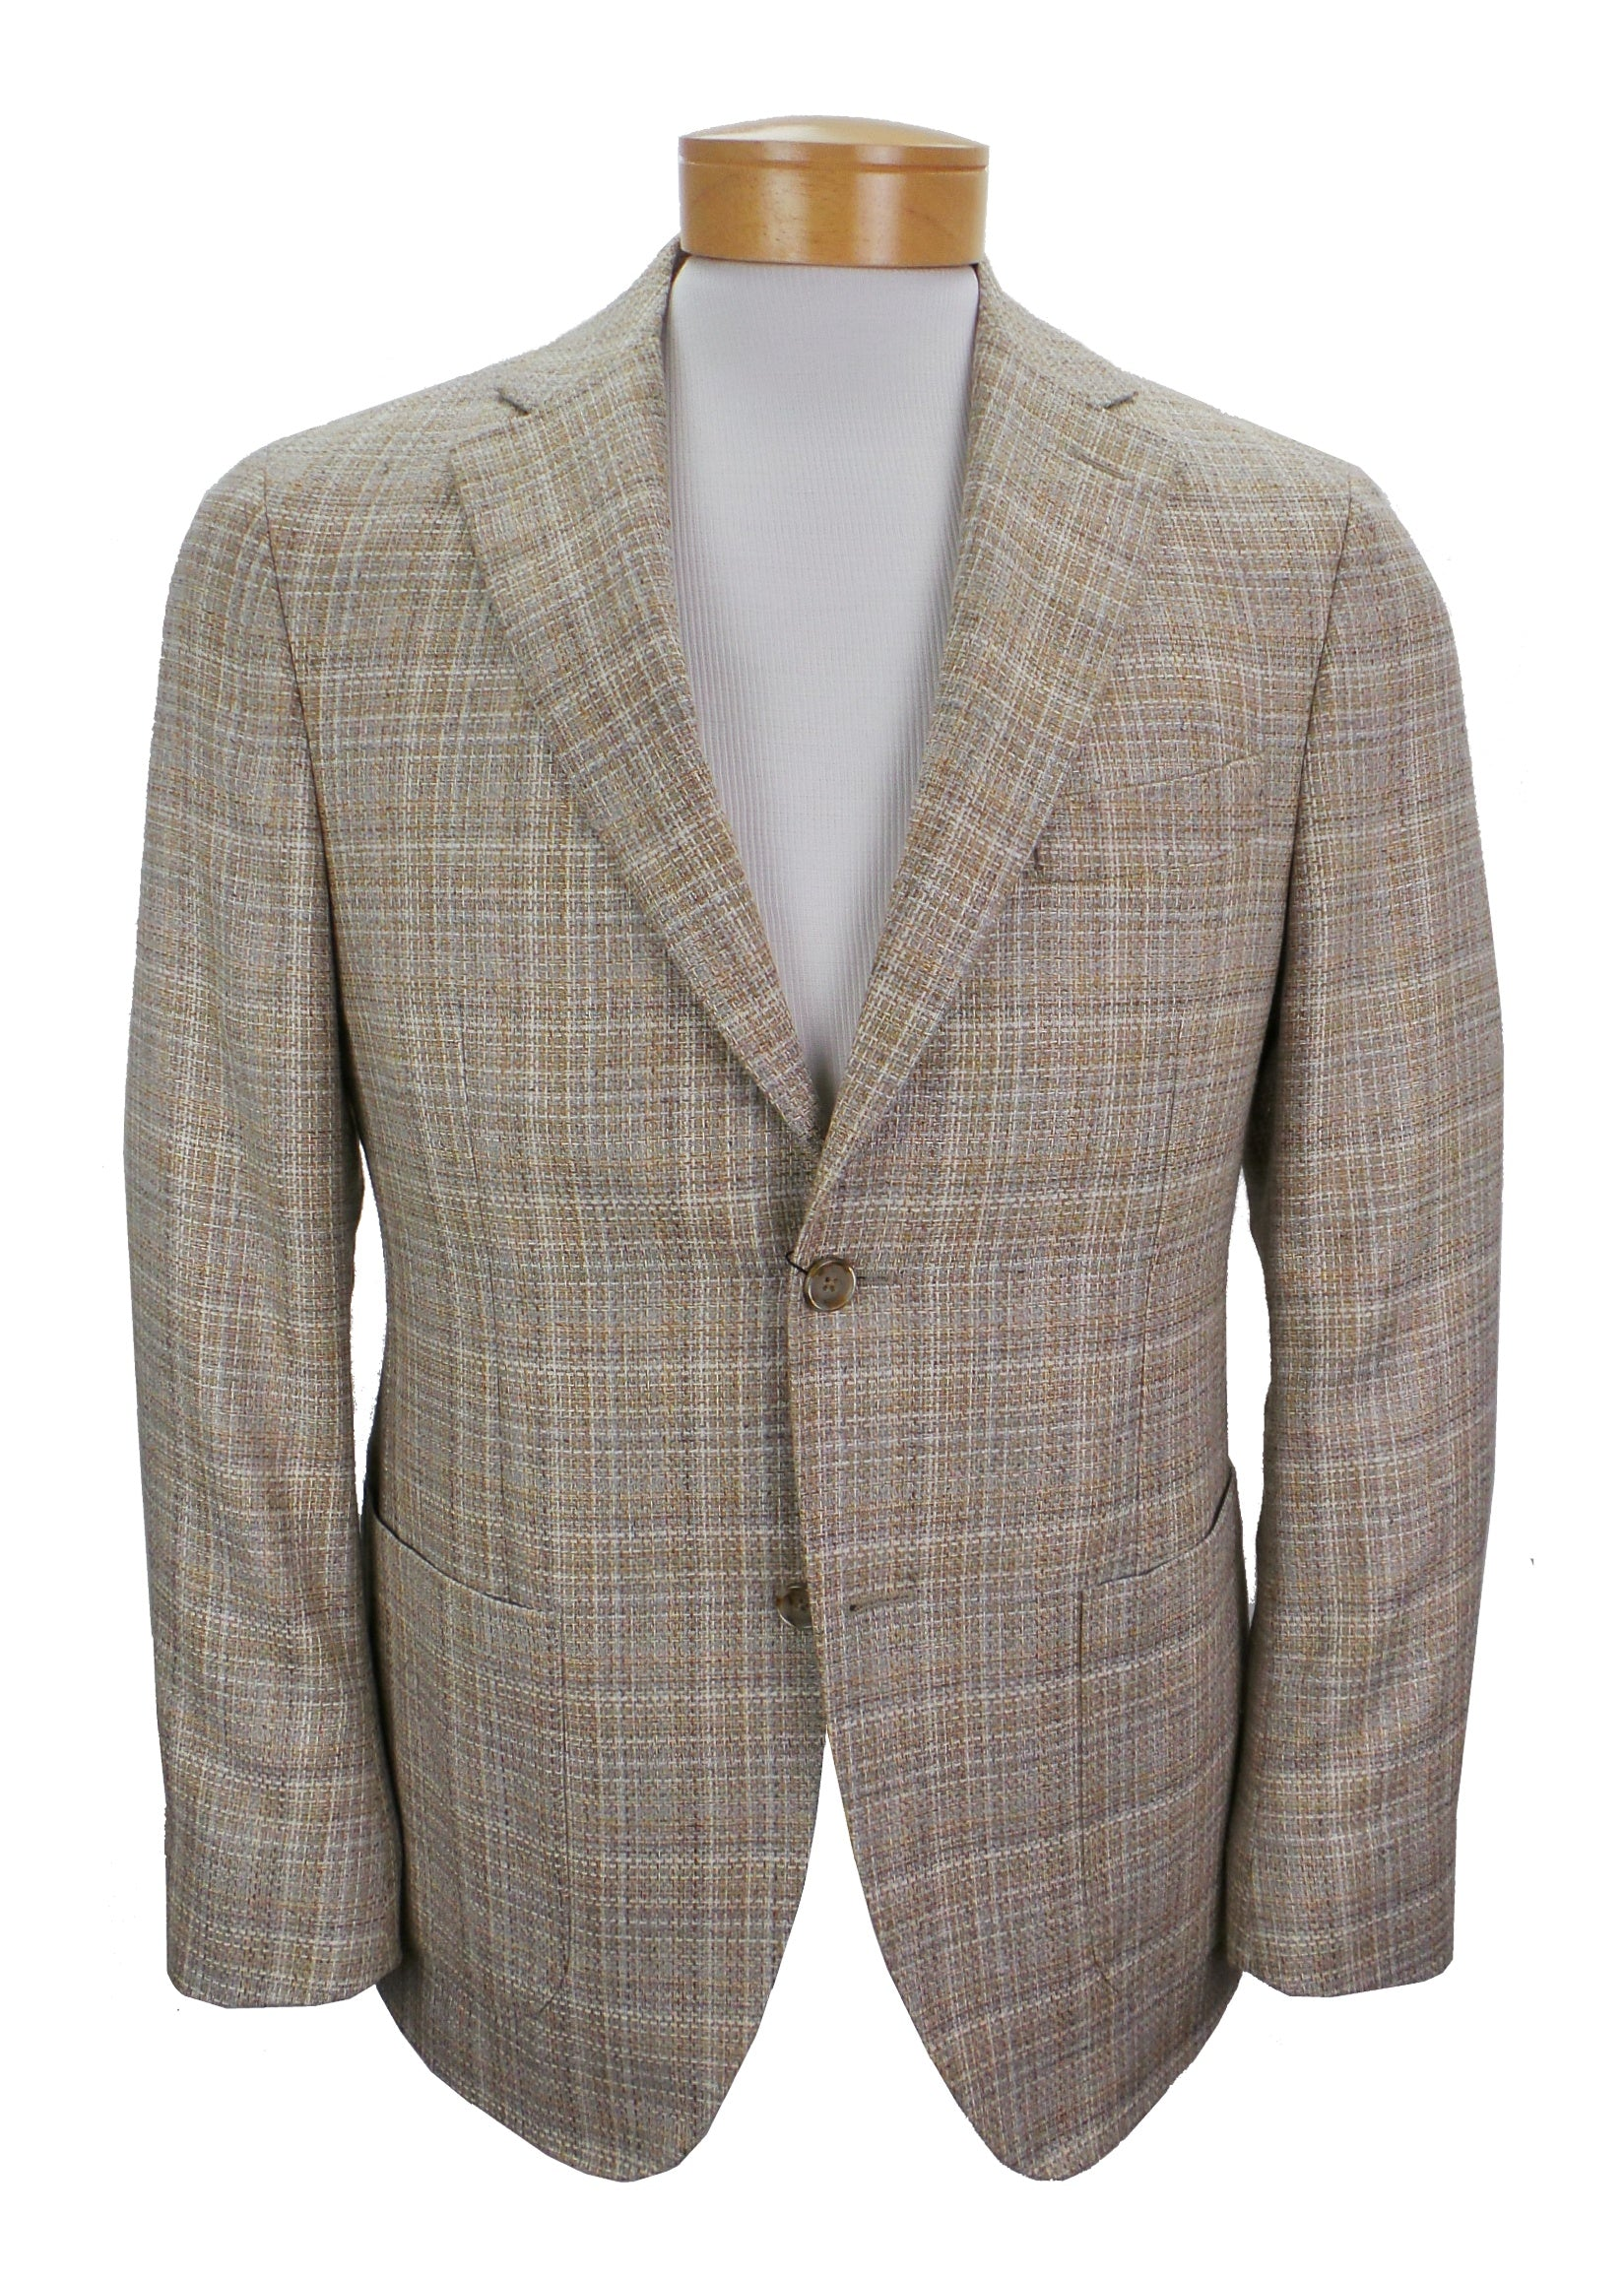 JKT New York Trent Lanificio di Pray Mill Basketweave Blazer